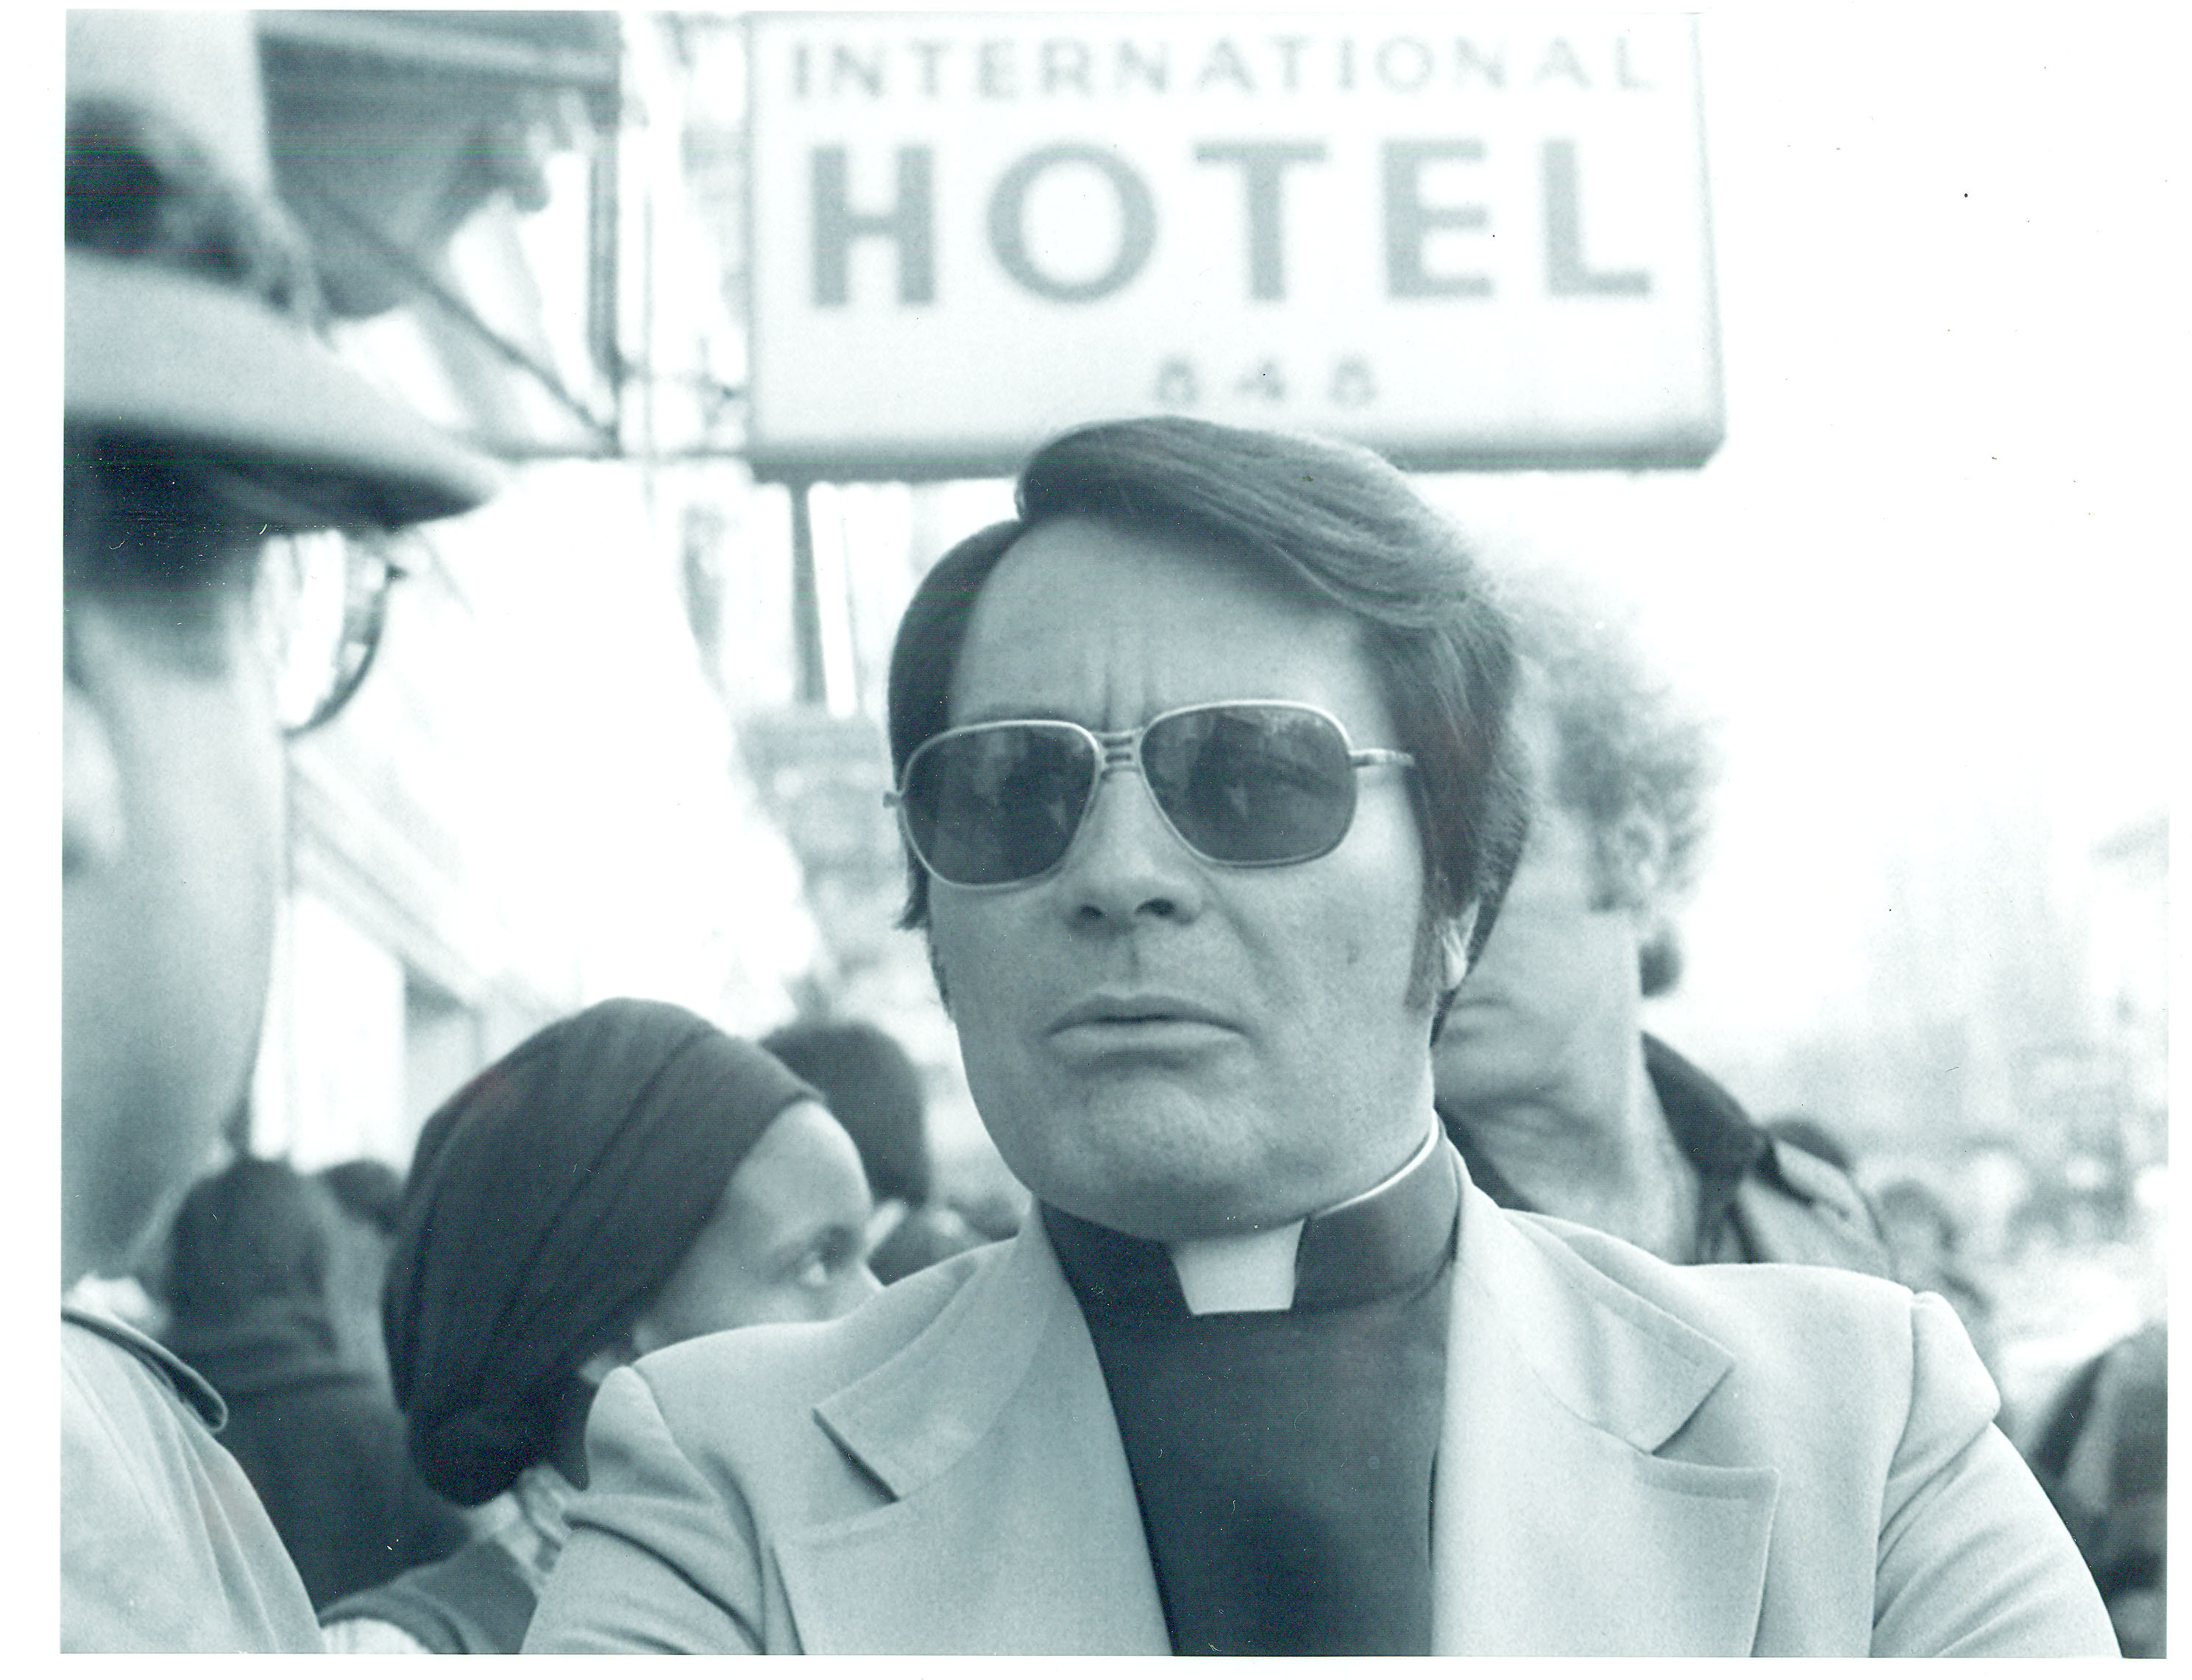 93141742b7 Jim Jones - Wikipedia